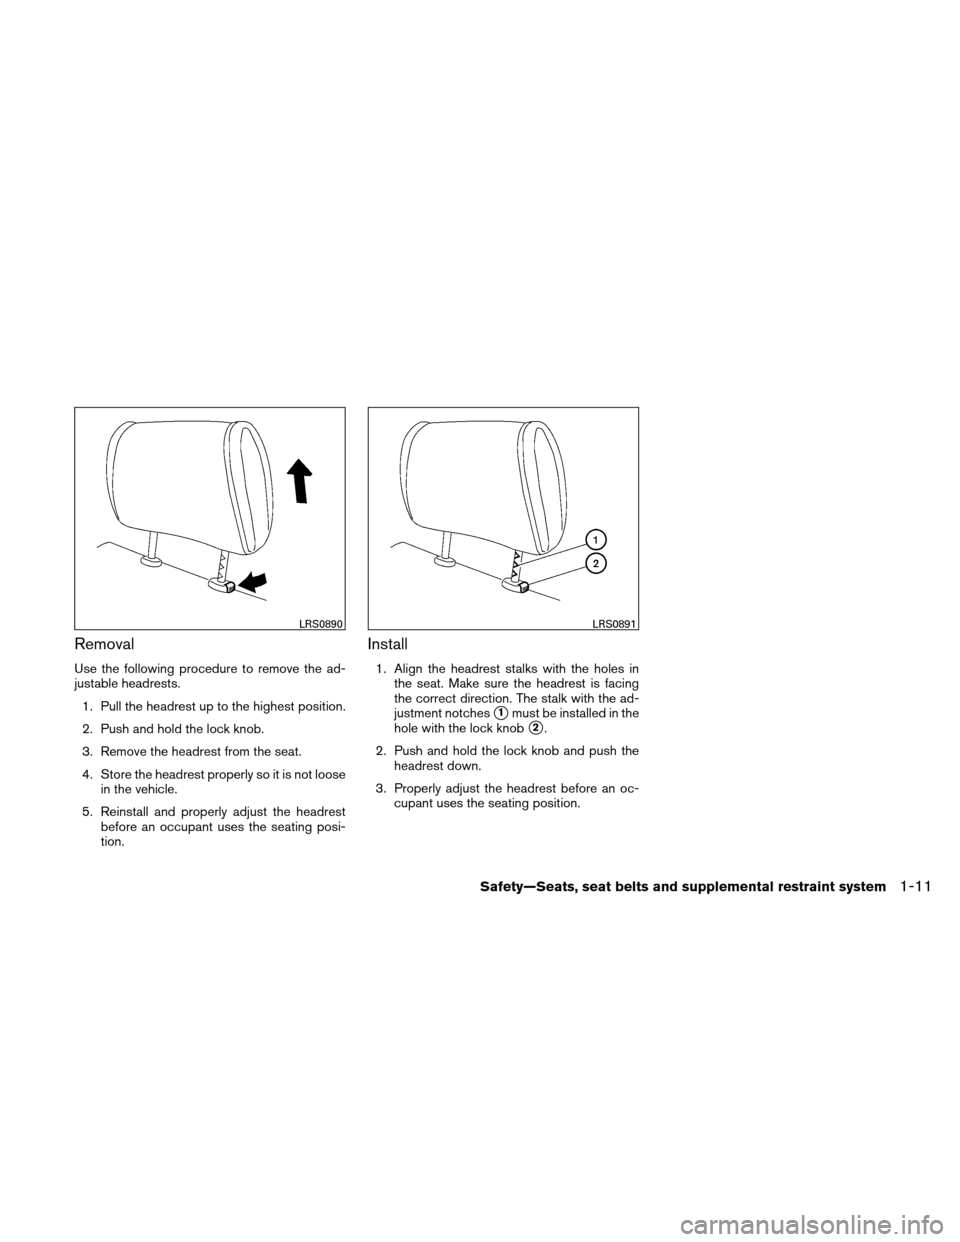 NISSAN VERSA HATCHBACK 2011 1.G Owners Manual Removal Use the following procedure to remove the ad- justable headrests.1. Pull the headrest up to the highest position. 2. Push and hold the lock knob. 3. Remove the headrest from the seat. 4. Store